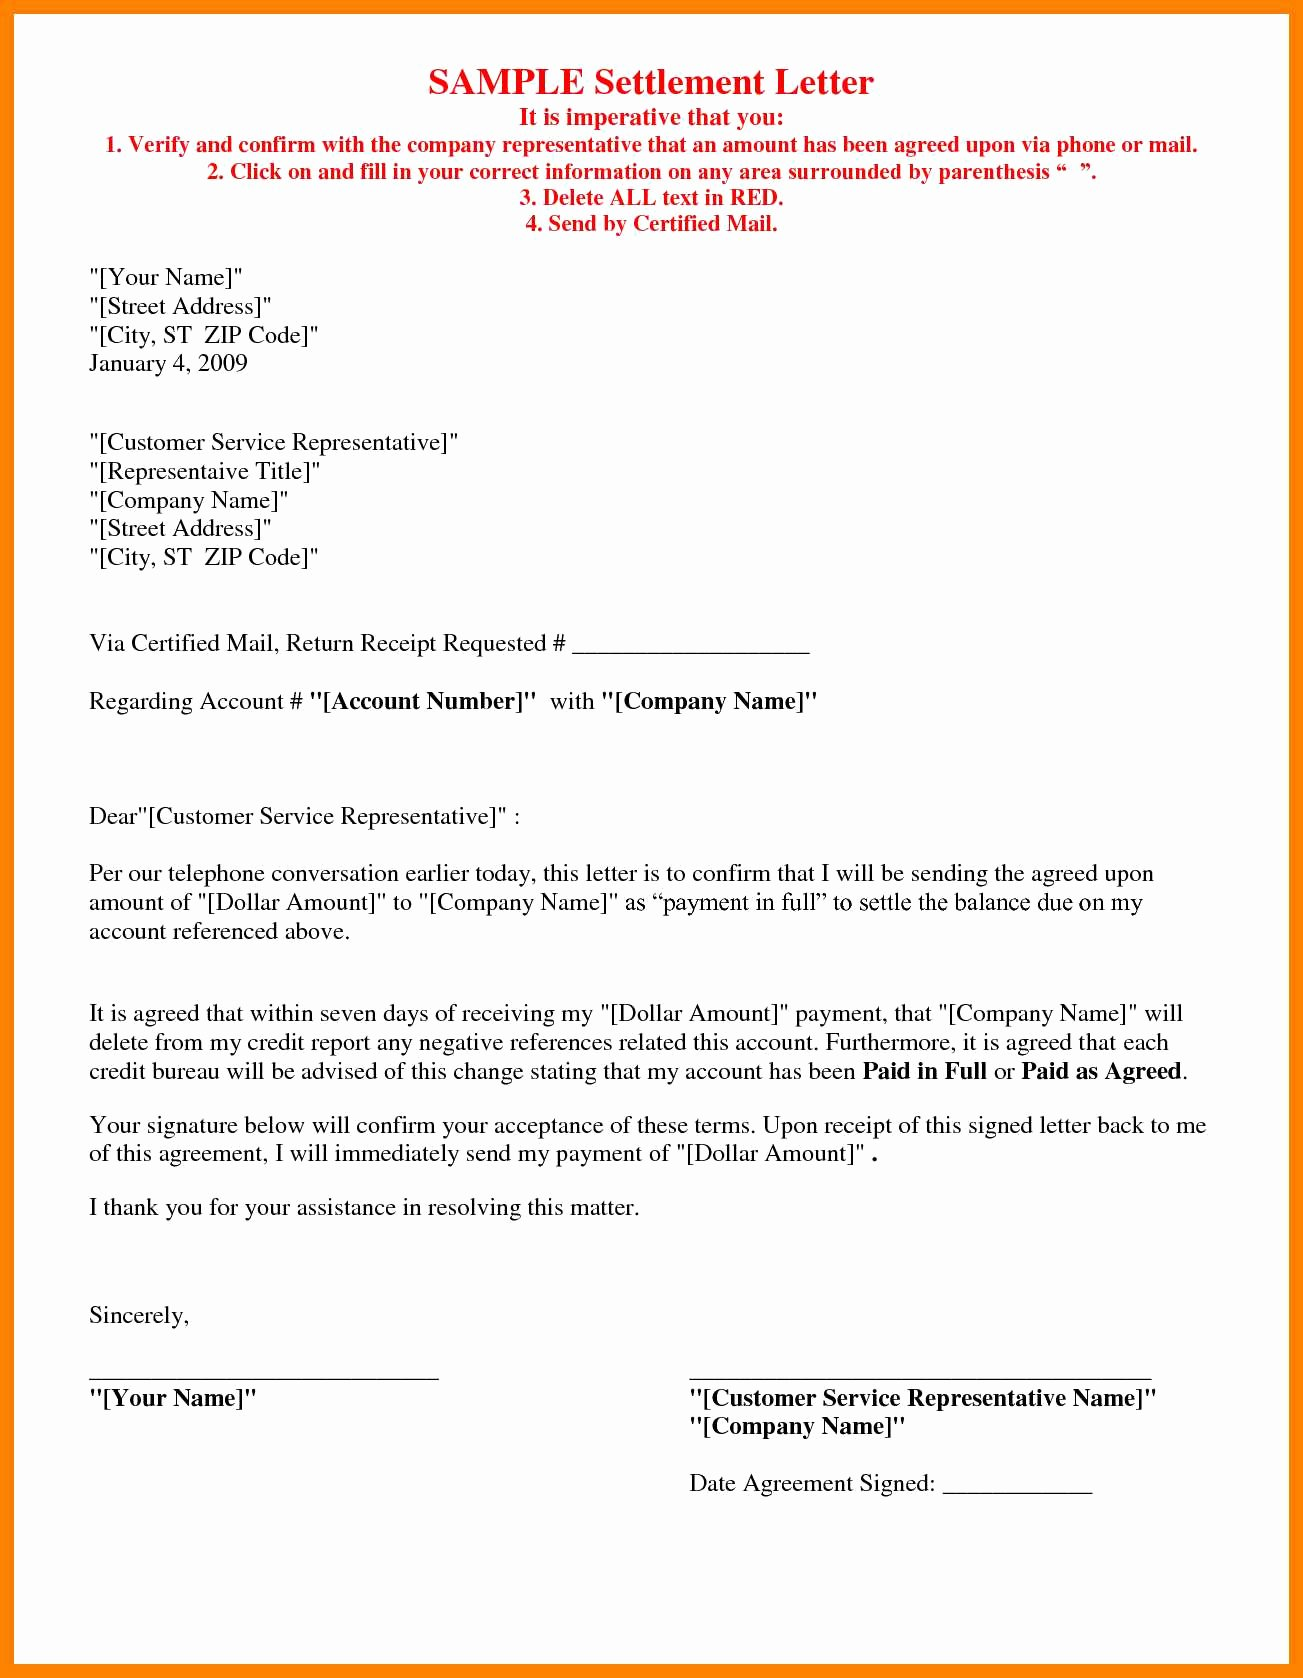 Car Accident Settlement Agreement Sample Elegant Car Accident Settlement Letter Template Samples